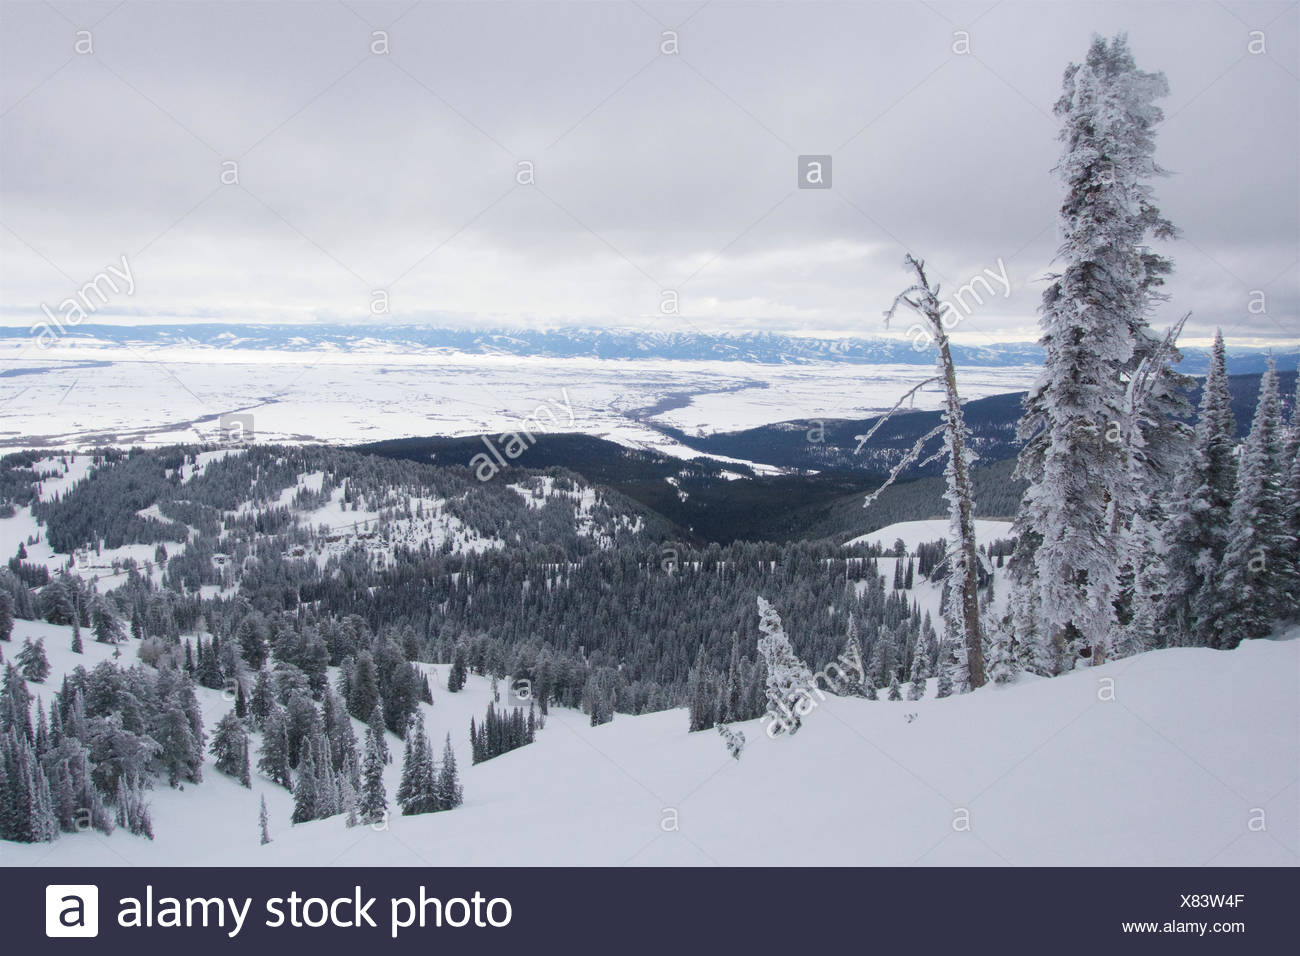 Winter scene with snow and rime covered trees in the mountains. - Stock Image